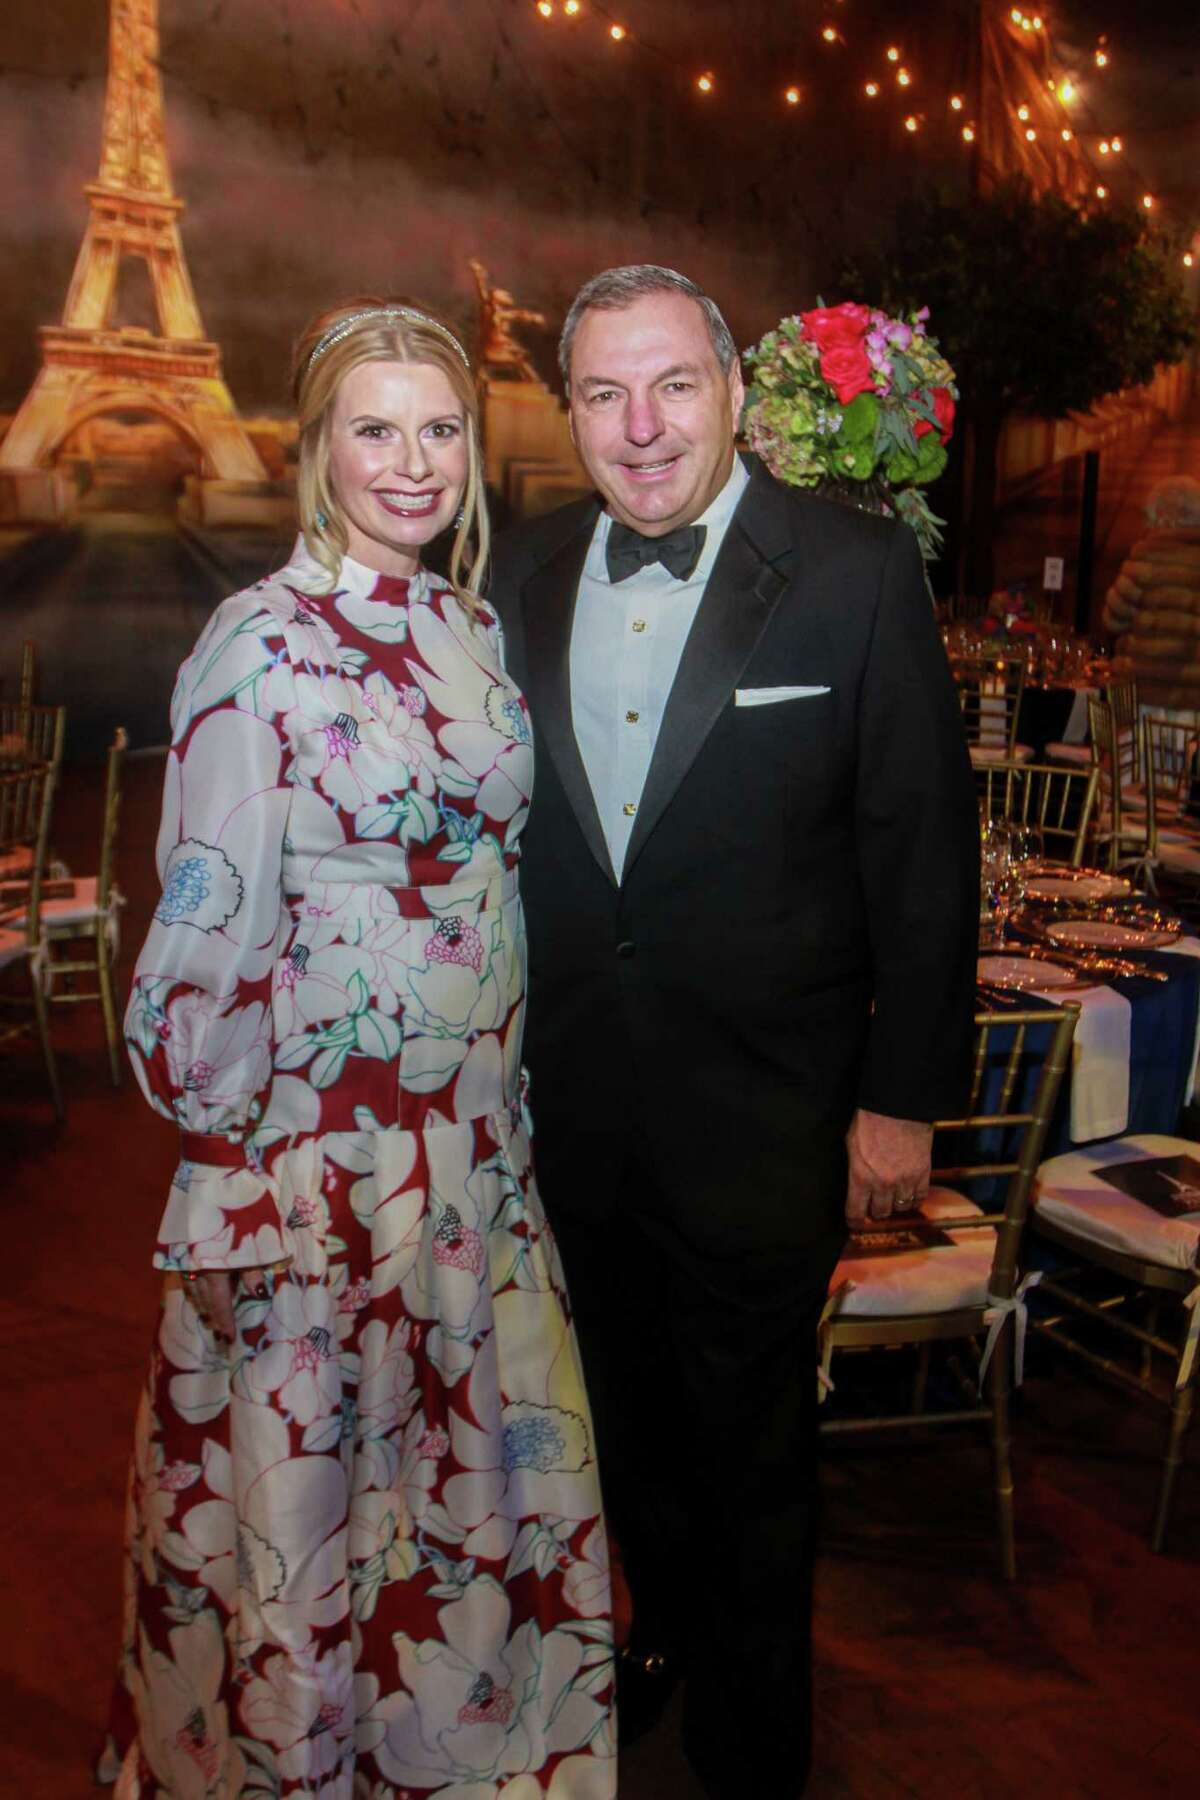 Co-chairs Valerie and Tracy Dieterich at the Houston Symphony's Wine Dinner & Collector's Auction in at Jones Hall in Houston on January 31, 2020.